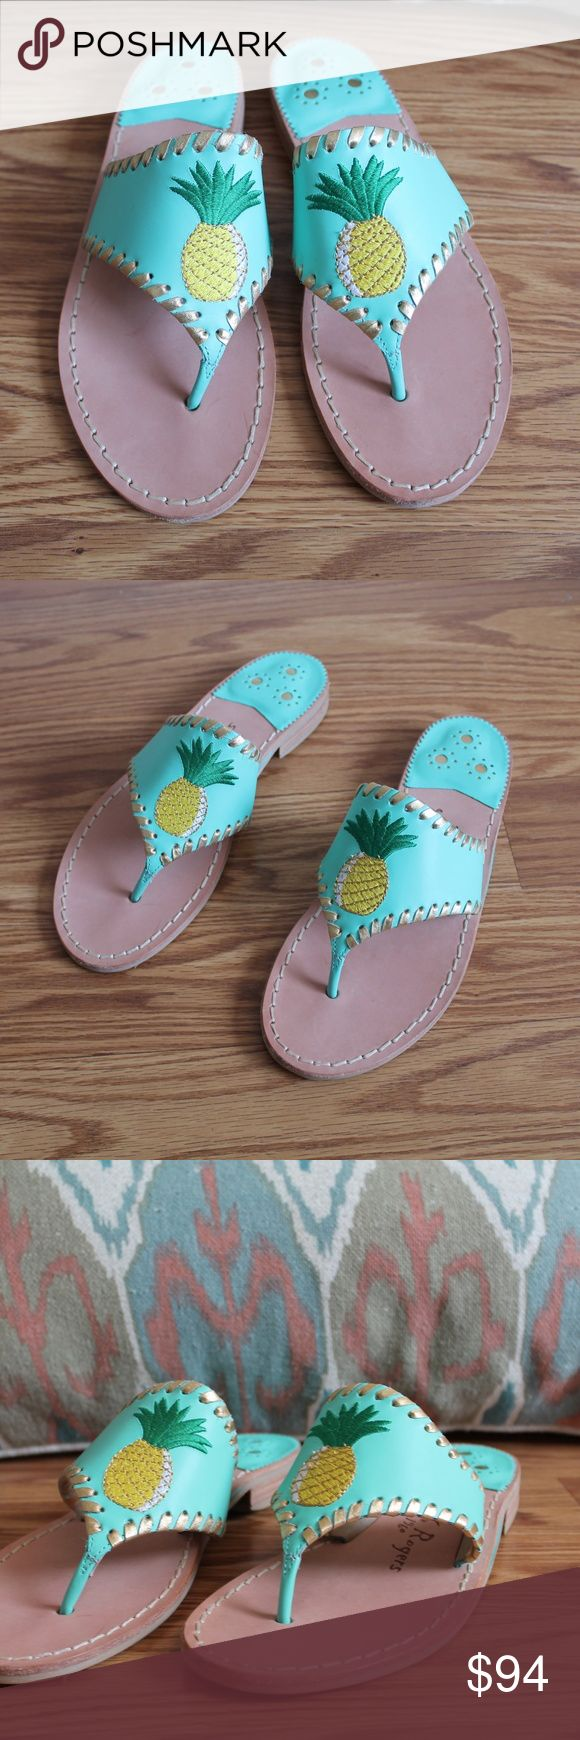 NEW Jack Rogers Blue Pineapple Leather Sandals Only worn to try on, new without tags. Turquoise blue leather with embroidered pineapples and gold wrap around trim. Size 6 1/2. Jack Rogers Shoes Sandals